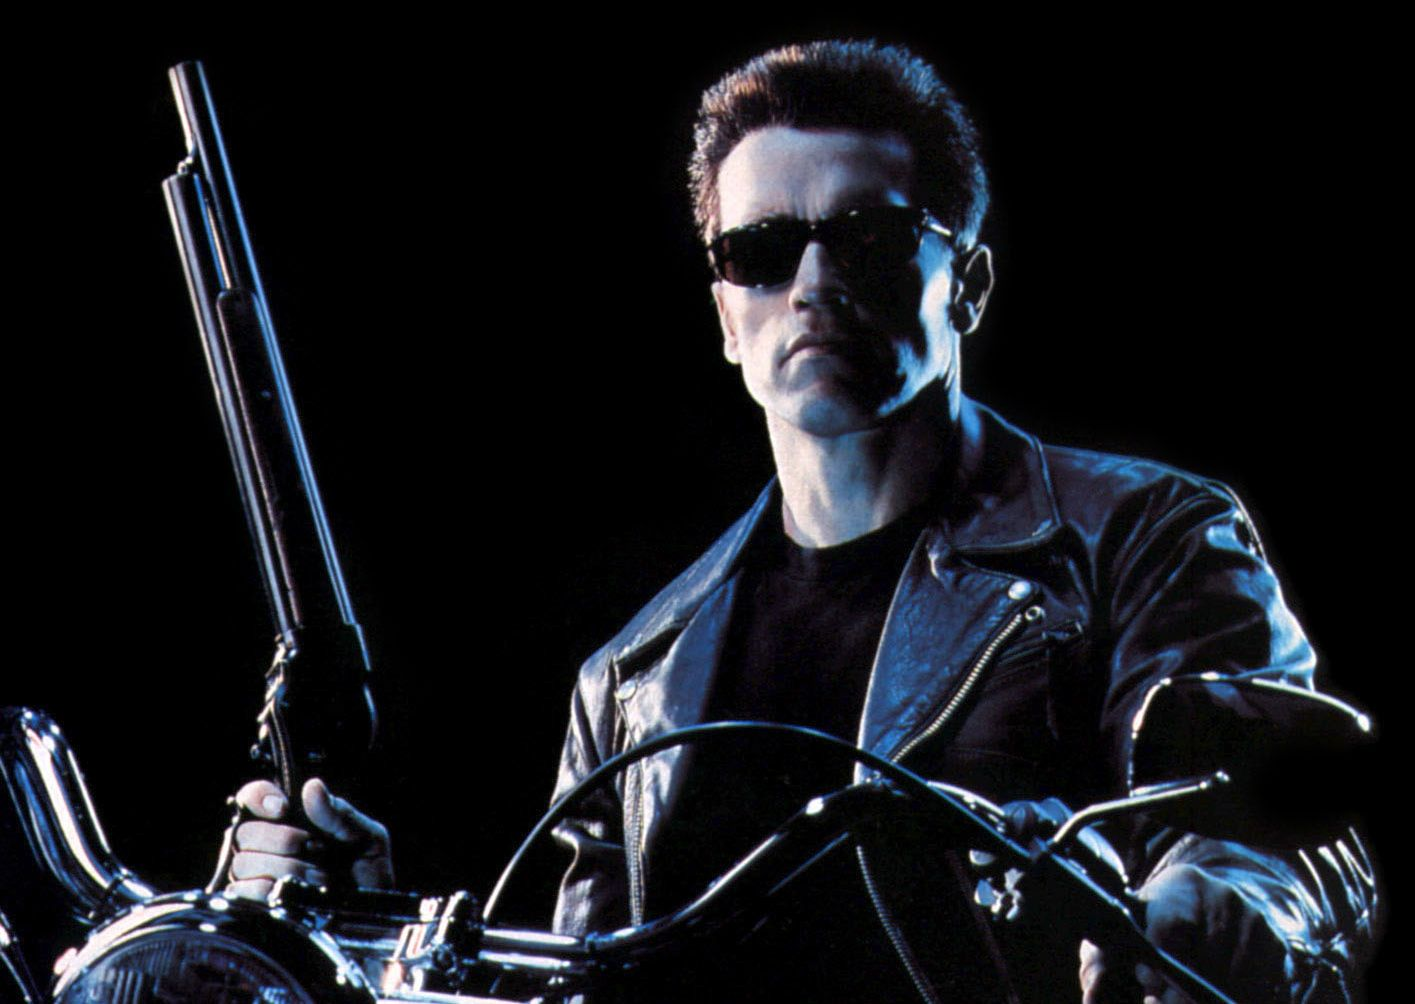 Arnold Schwarzenegger was paid approximately $21,429 for eve